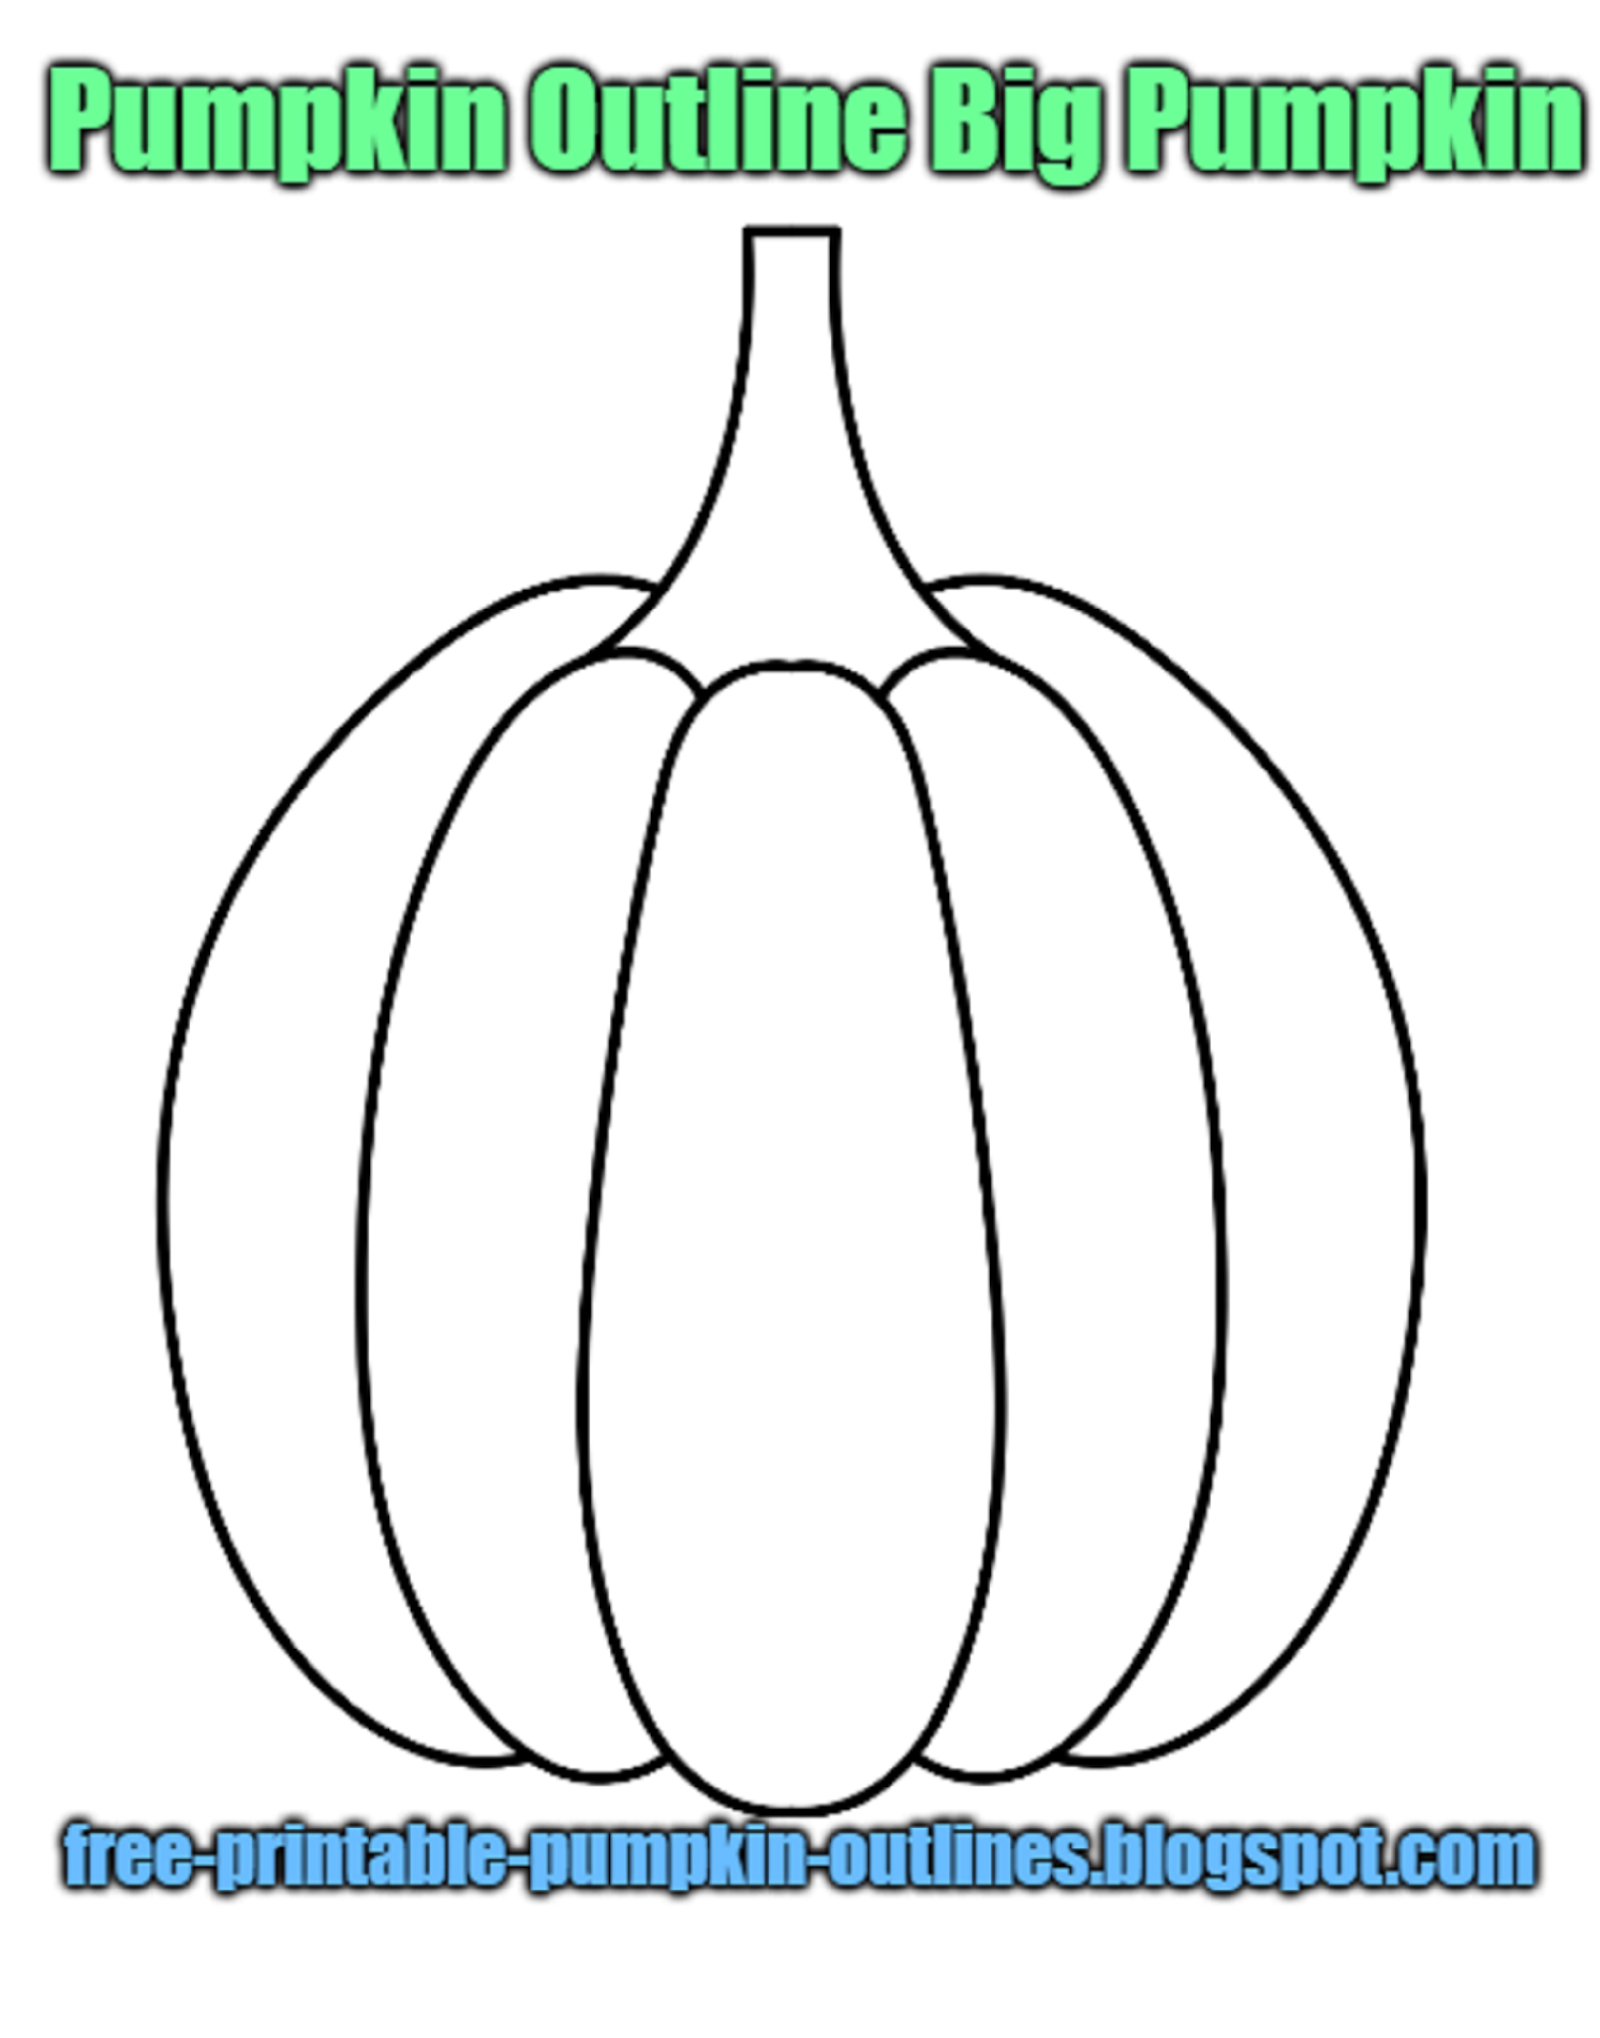 Pumpkin Outline With Face Simple Free Printable Pumpkin Outlines Pumpkin Outline Biggest Pumpkin Pumpkin